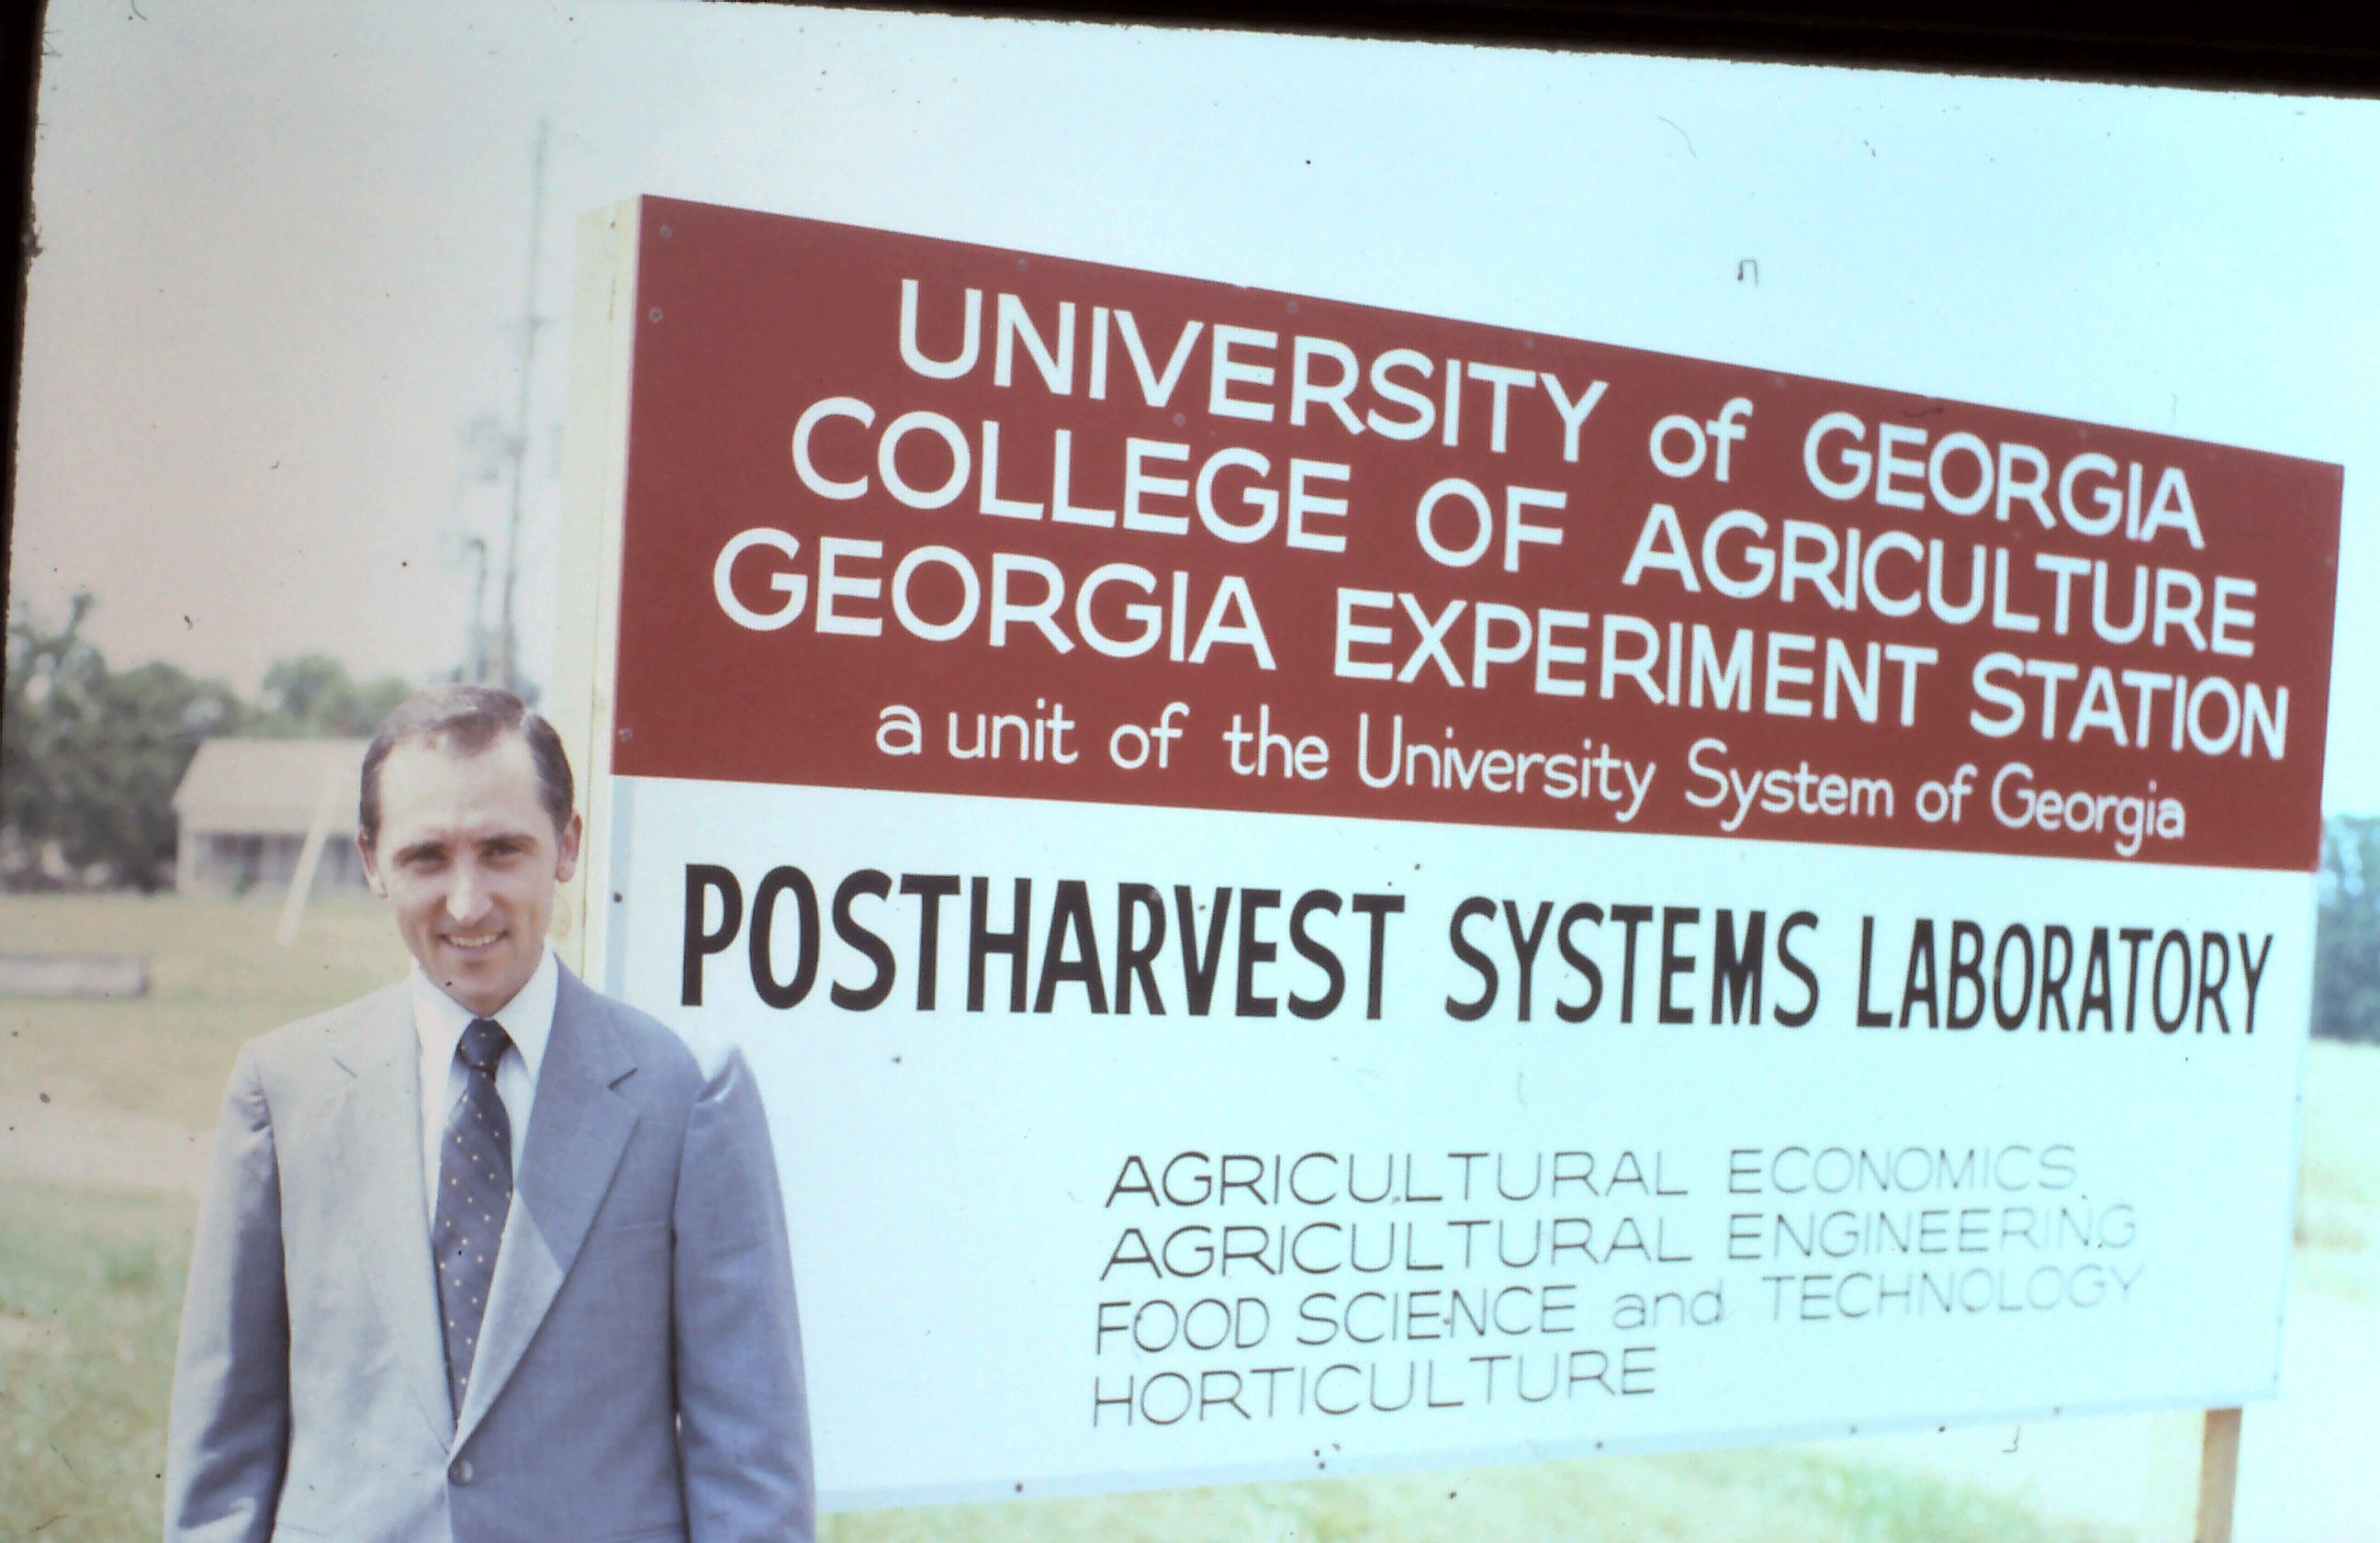 photo of the author next to a sign identifying Agriculutral Economics, Agricultural Engineering, Food Science and Technology and Horticulture as major players